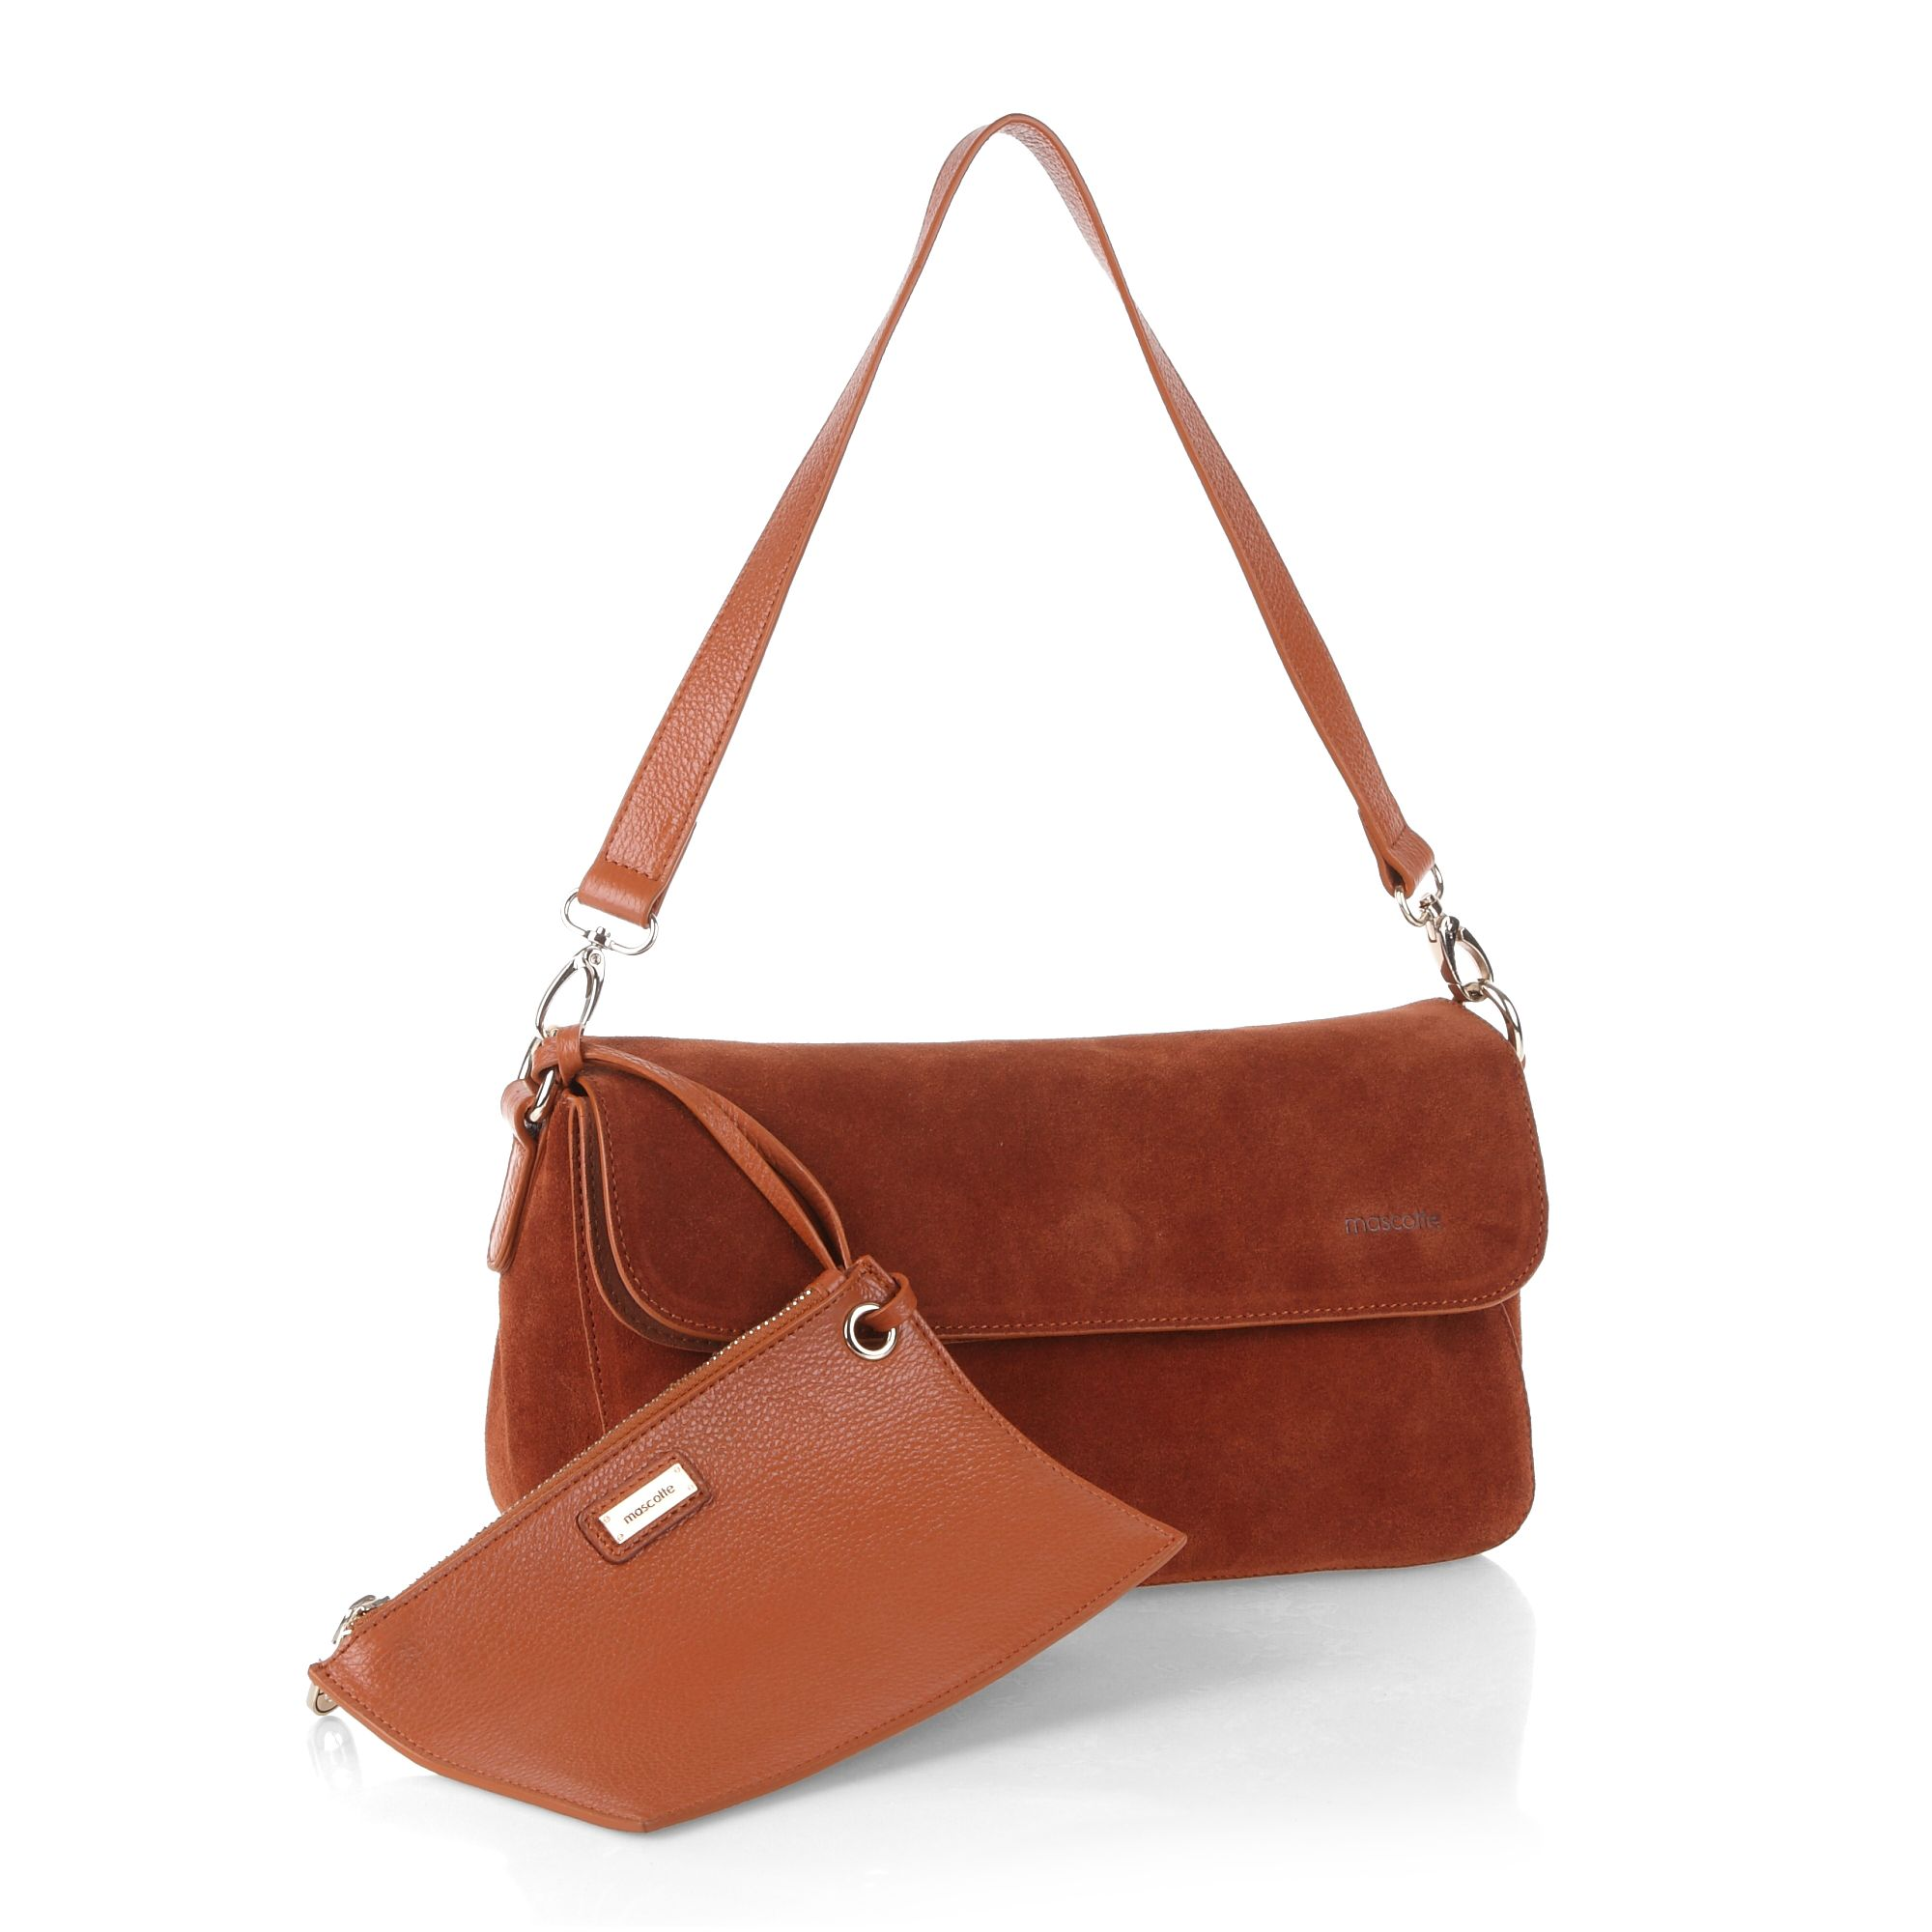 Flapover satchel bag